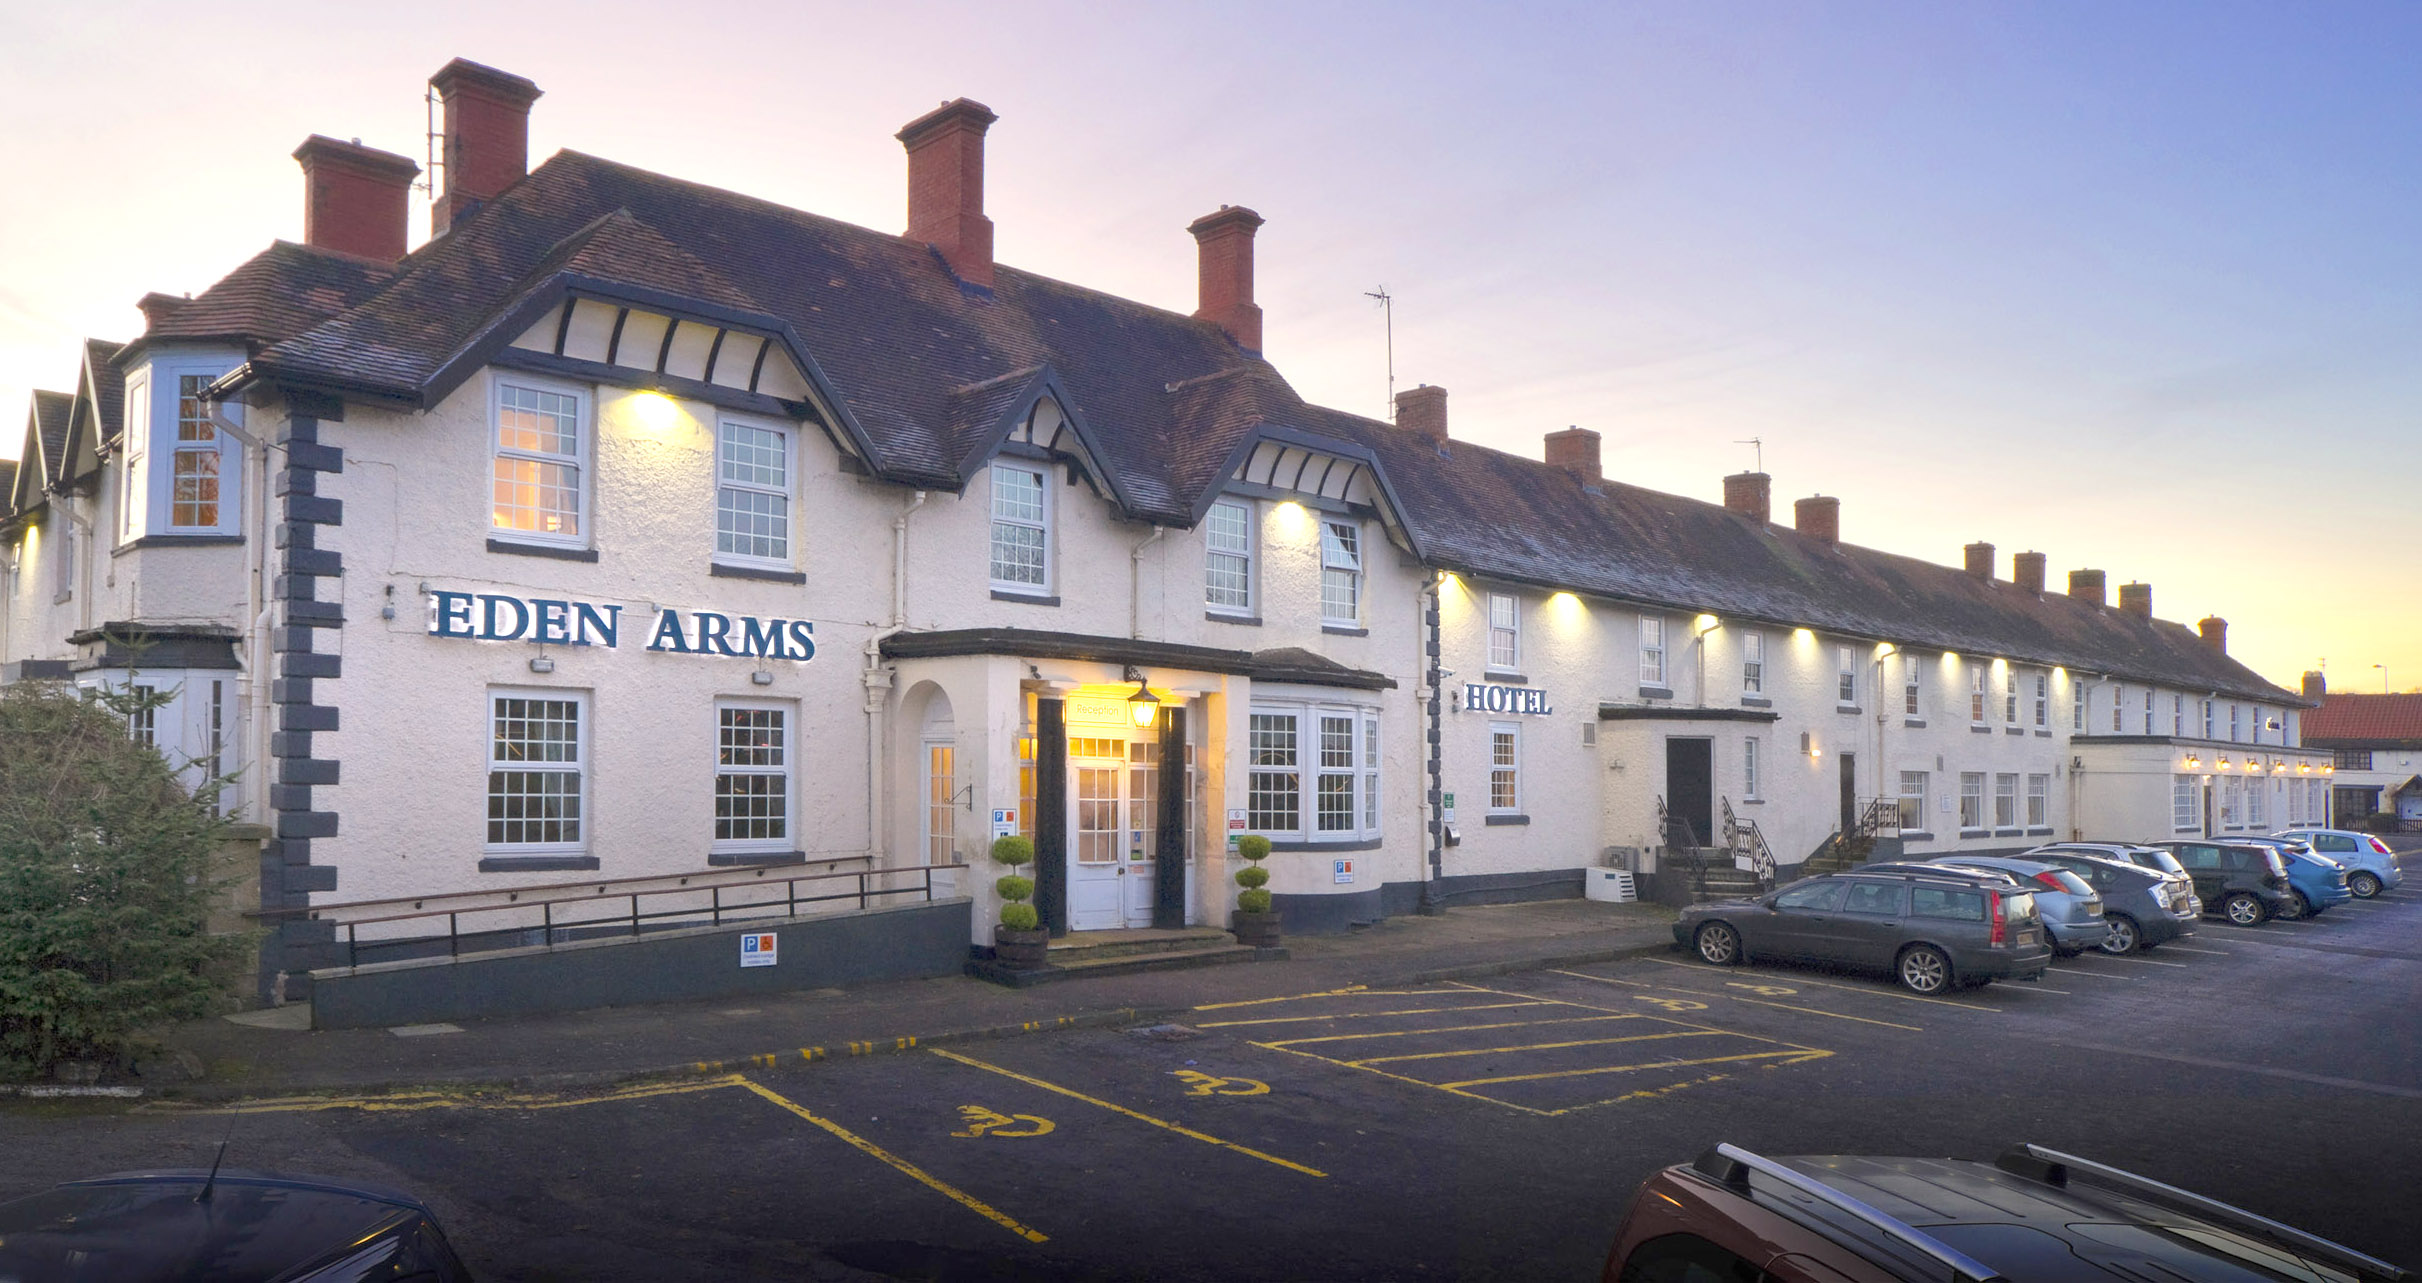 Beer Festival at The Eden Arms